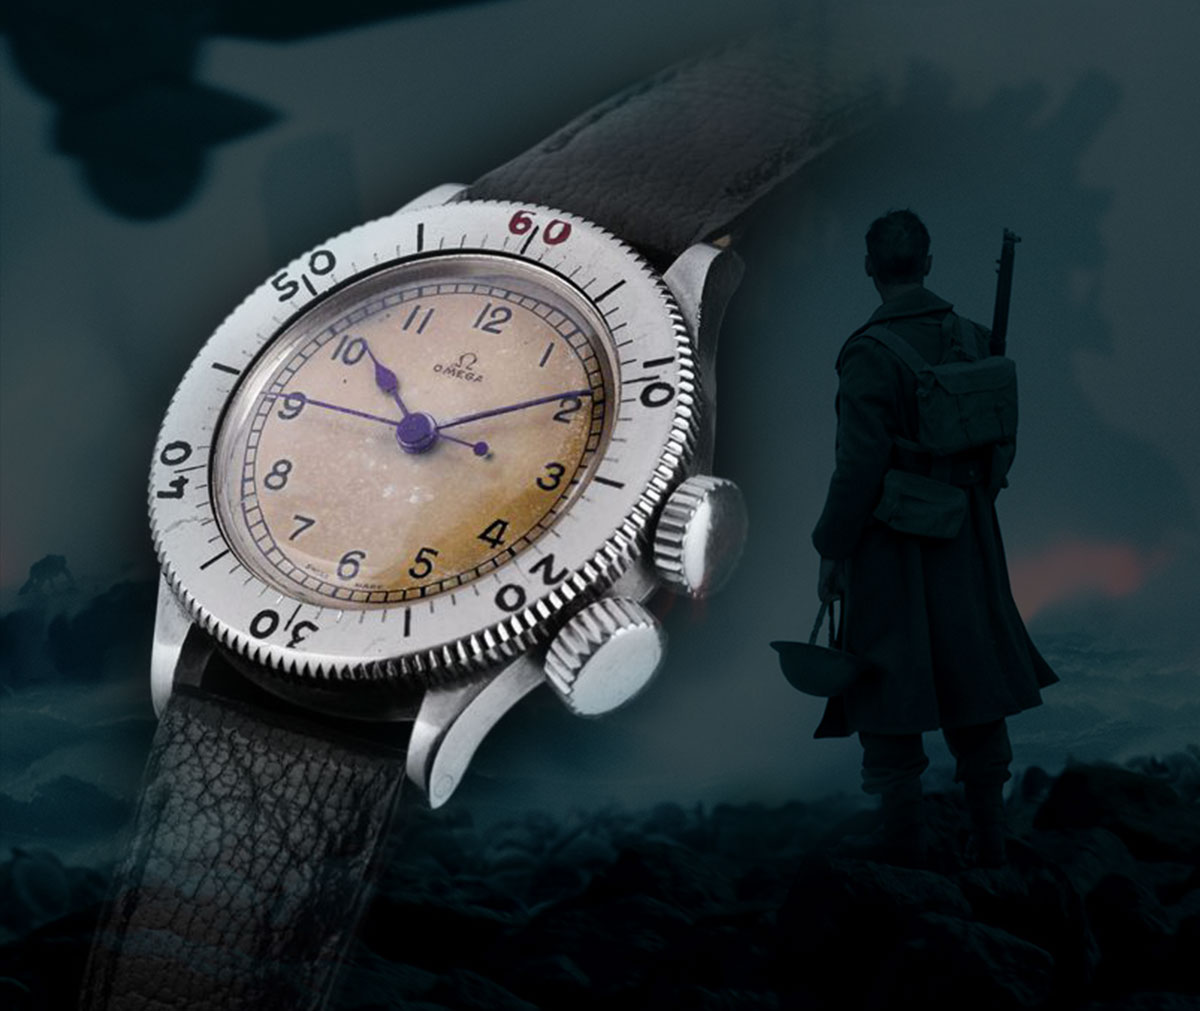 Omega watch used in Dunkirk movie